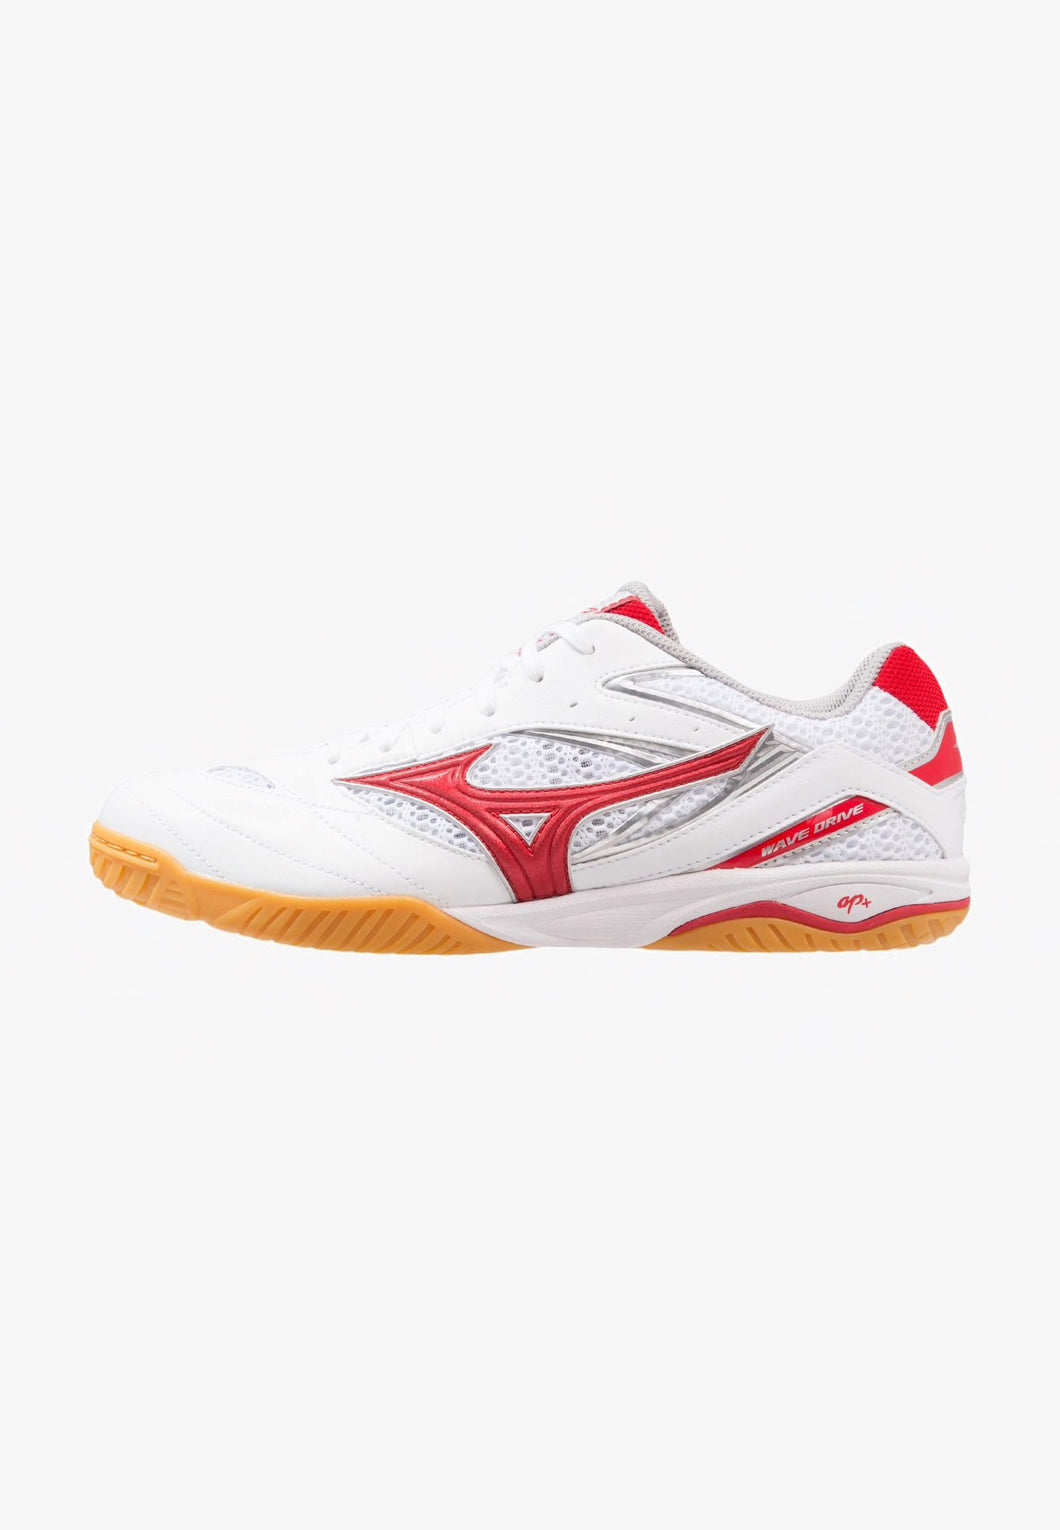 Mizuno Wave Drive 8 Red